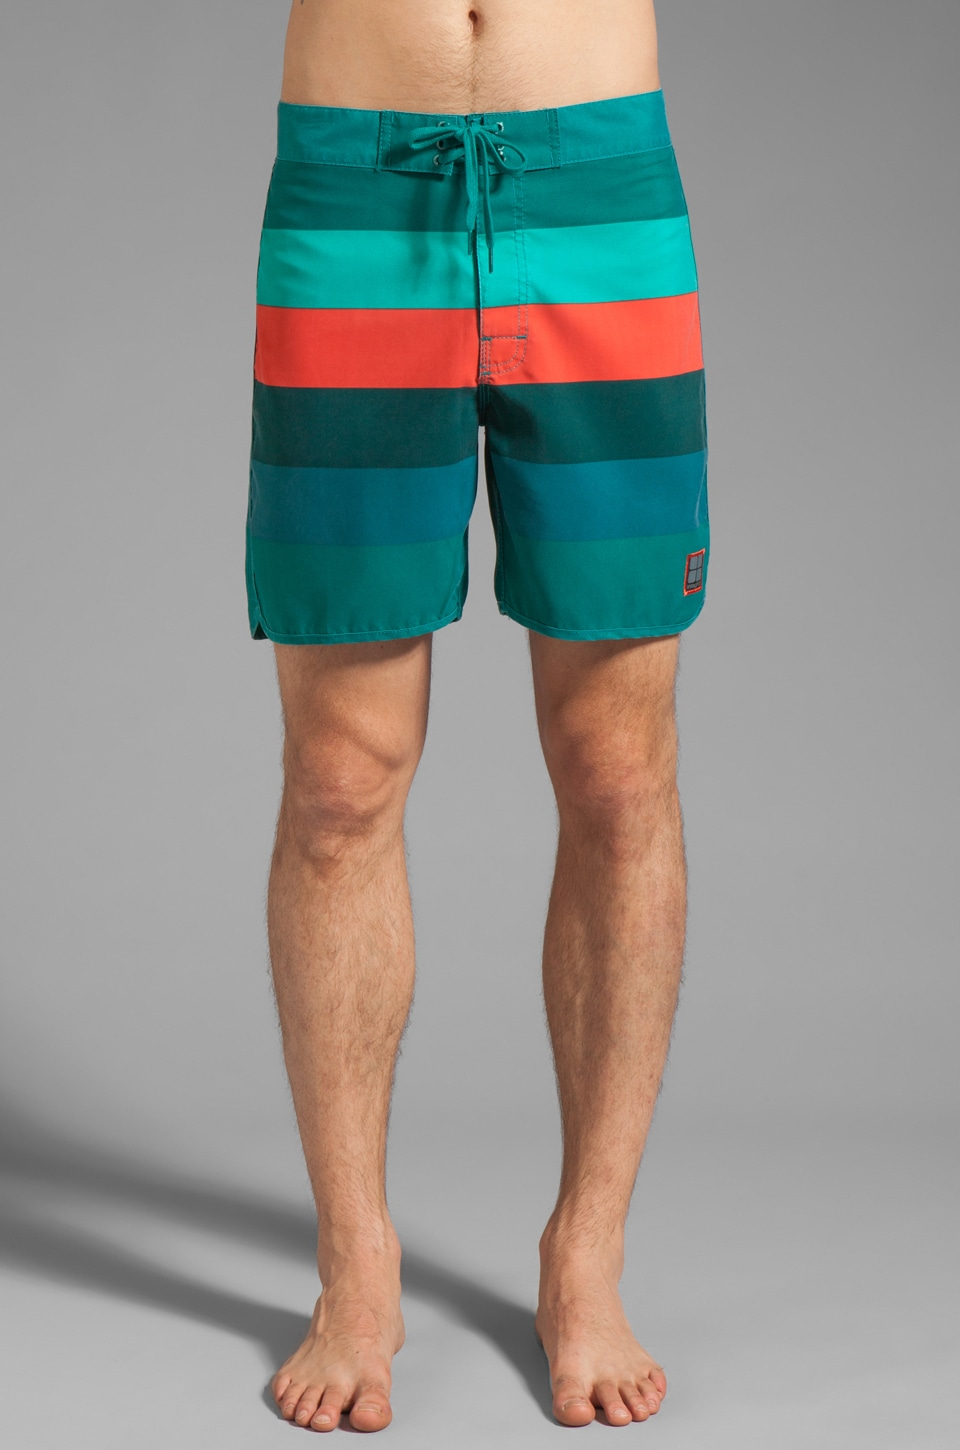 Insight Retro Stud Mid Boardshort in Unjaded